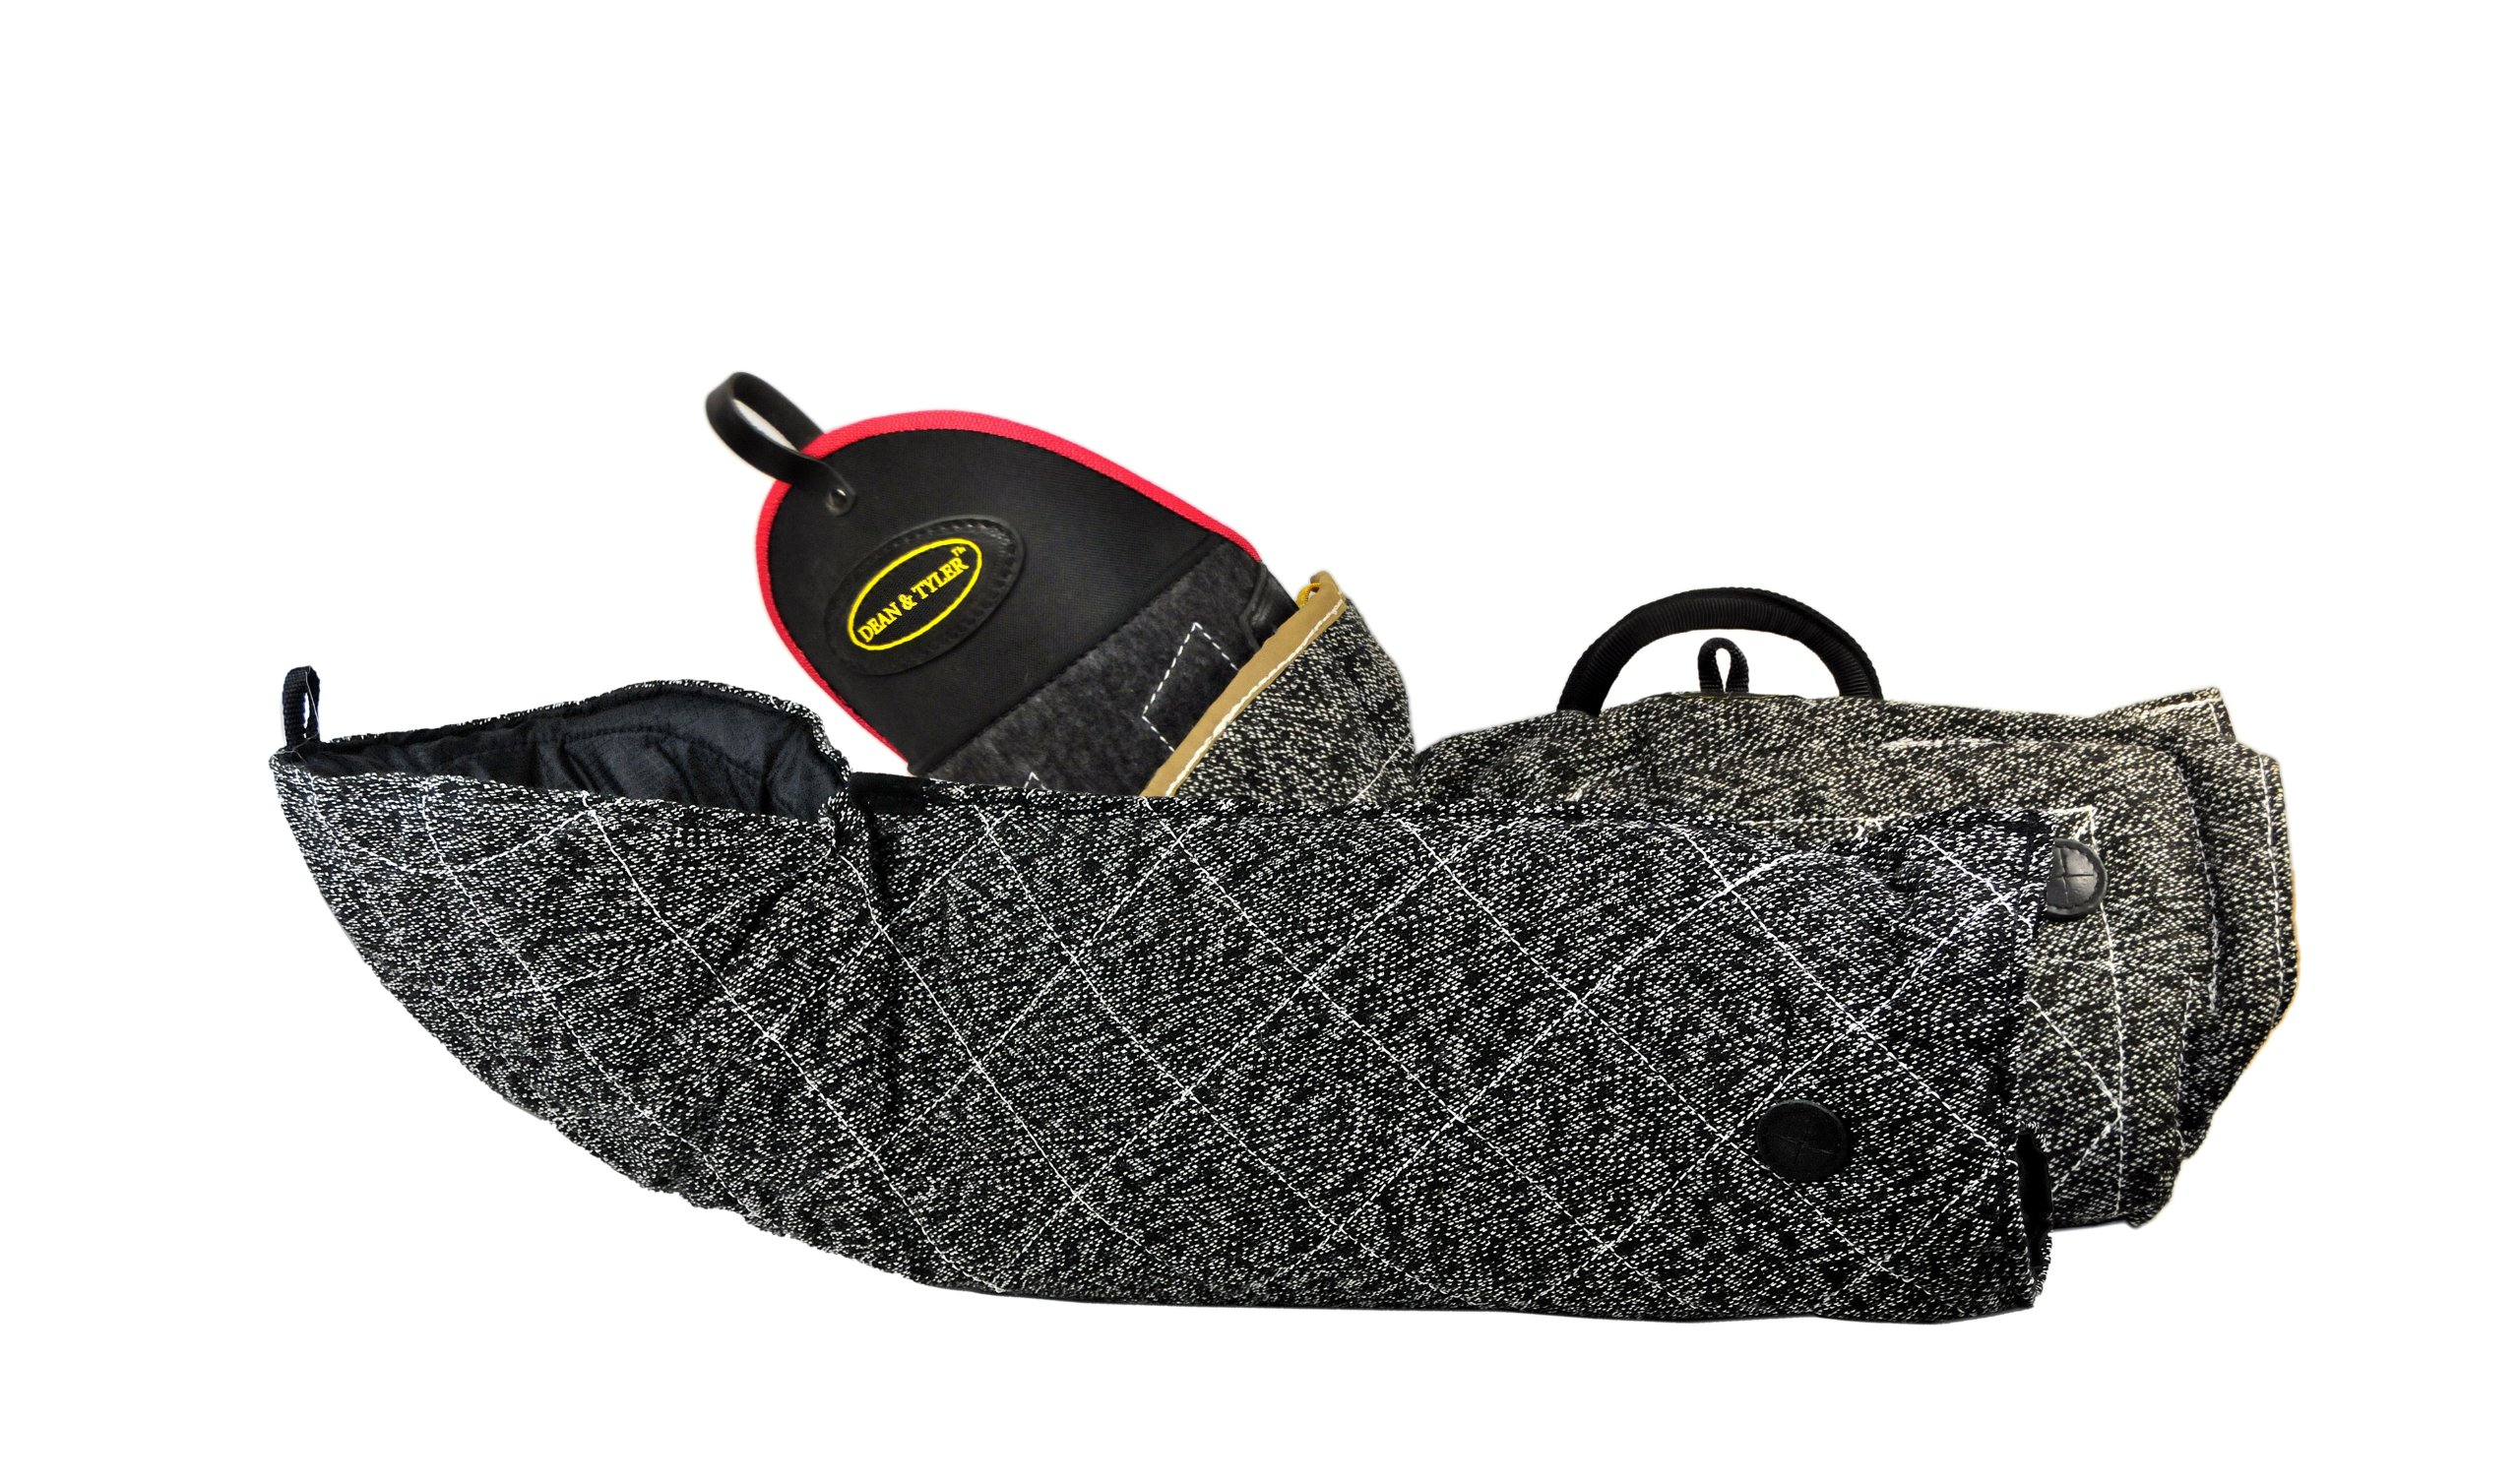 Dean & Tyler 2-Piece Pro Bundle Set, Includes Bite Sleeve With French Linen Cover/Full Arm Bite Sleeve for Training Intermediate Dogs Jute by Dean & Tyler